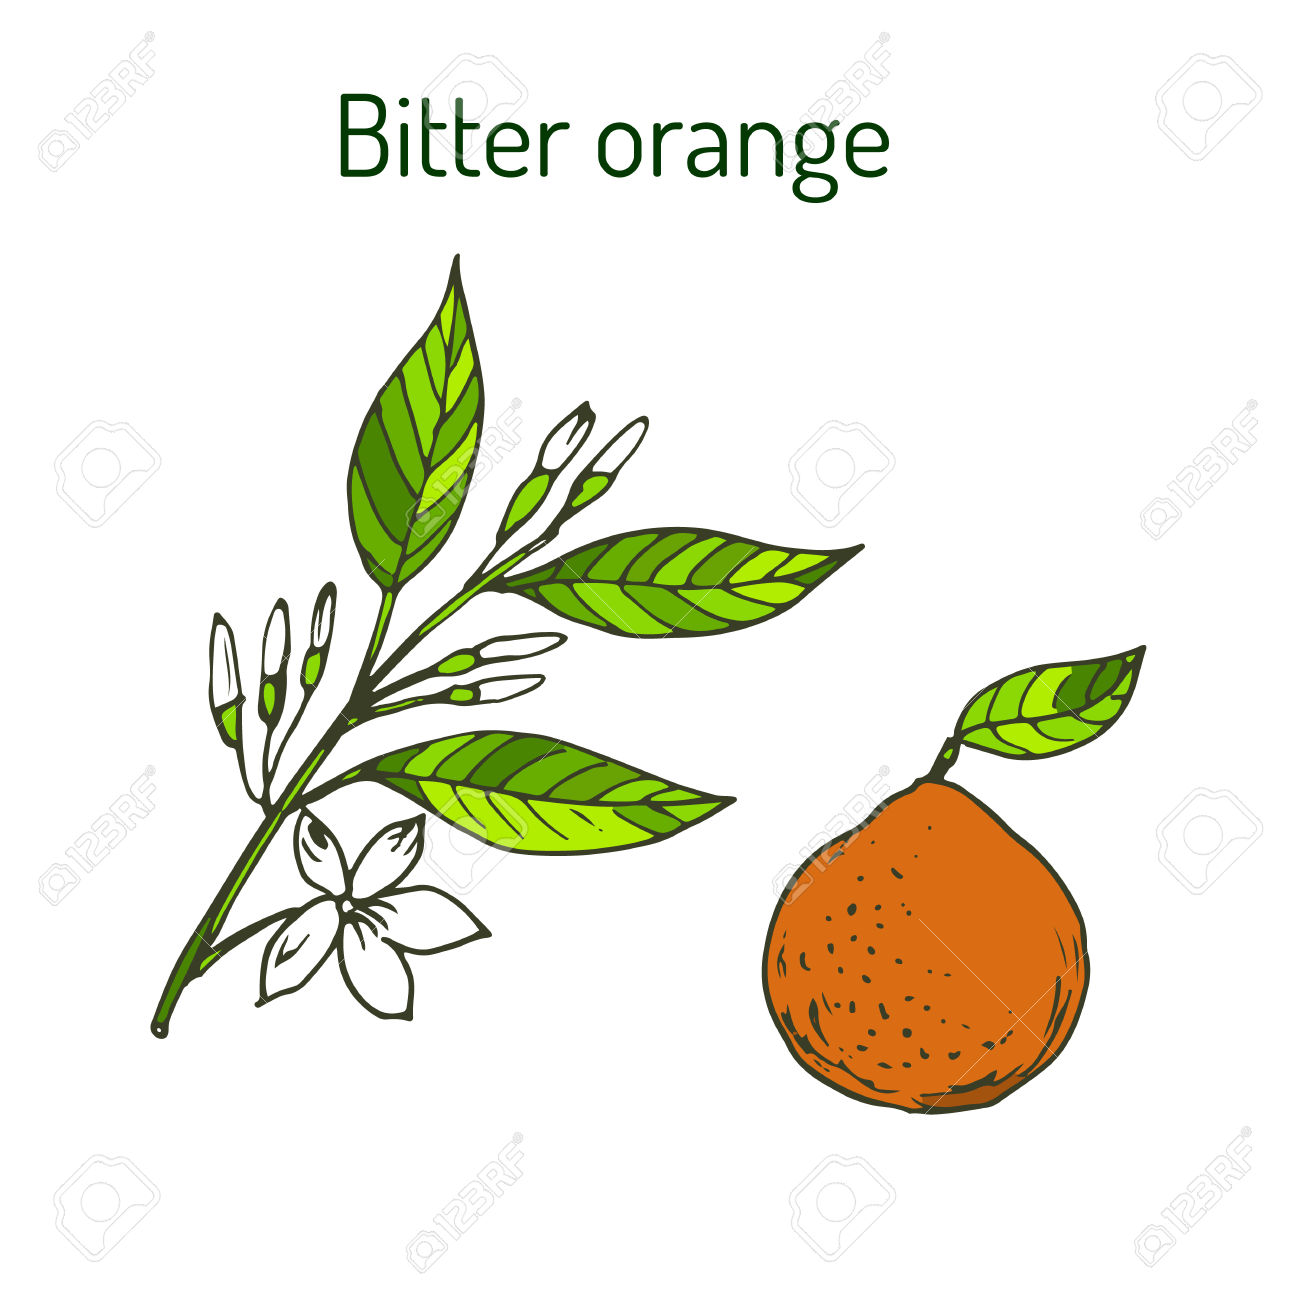 Bitter Orange, Seville Orange, Sour Orange, Bigarade Orange.